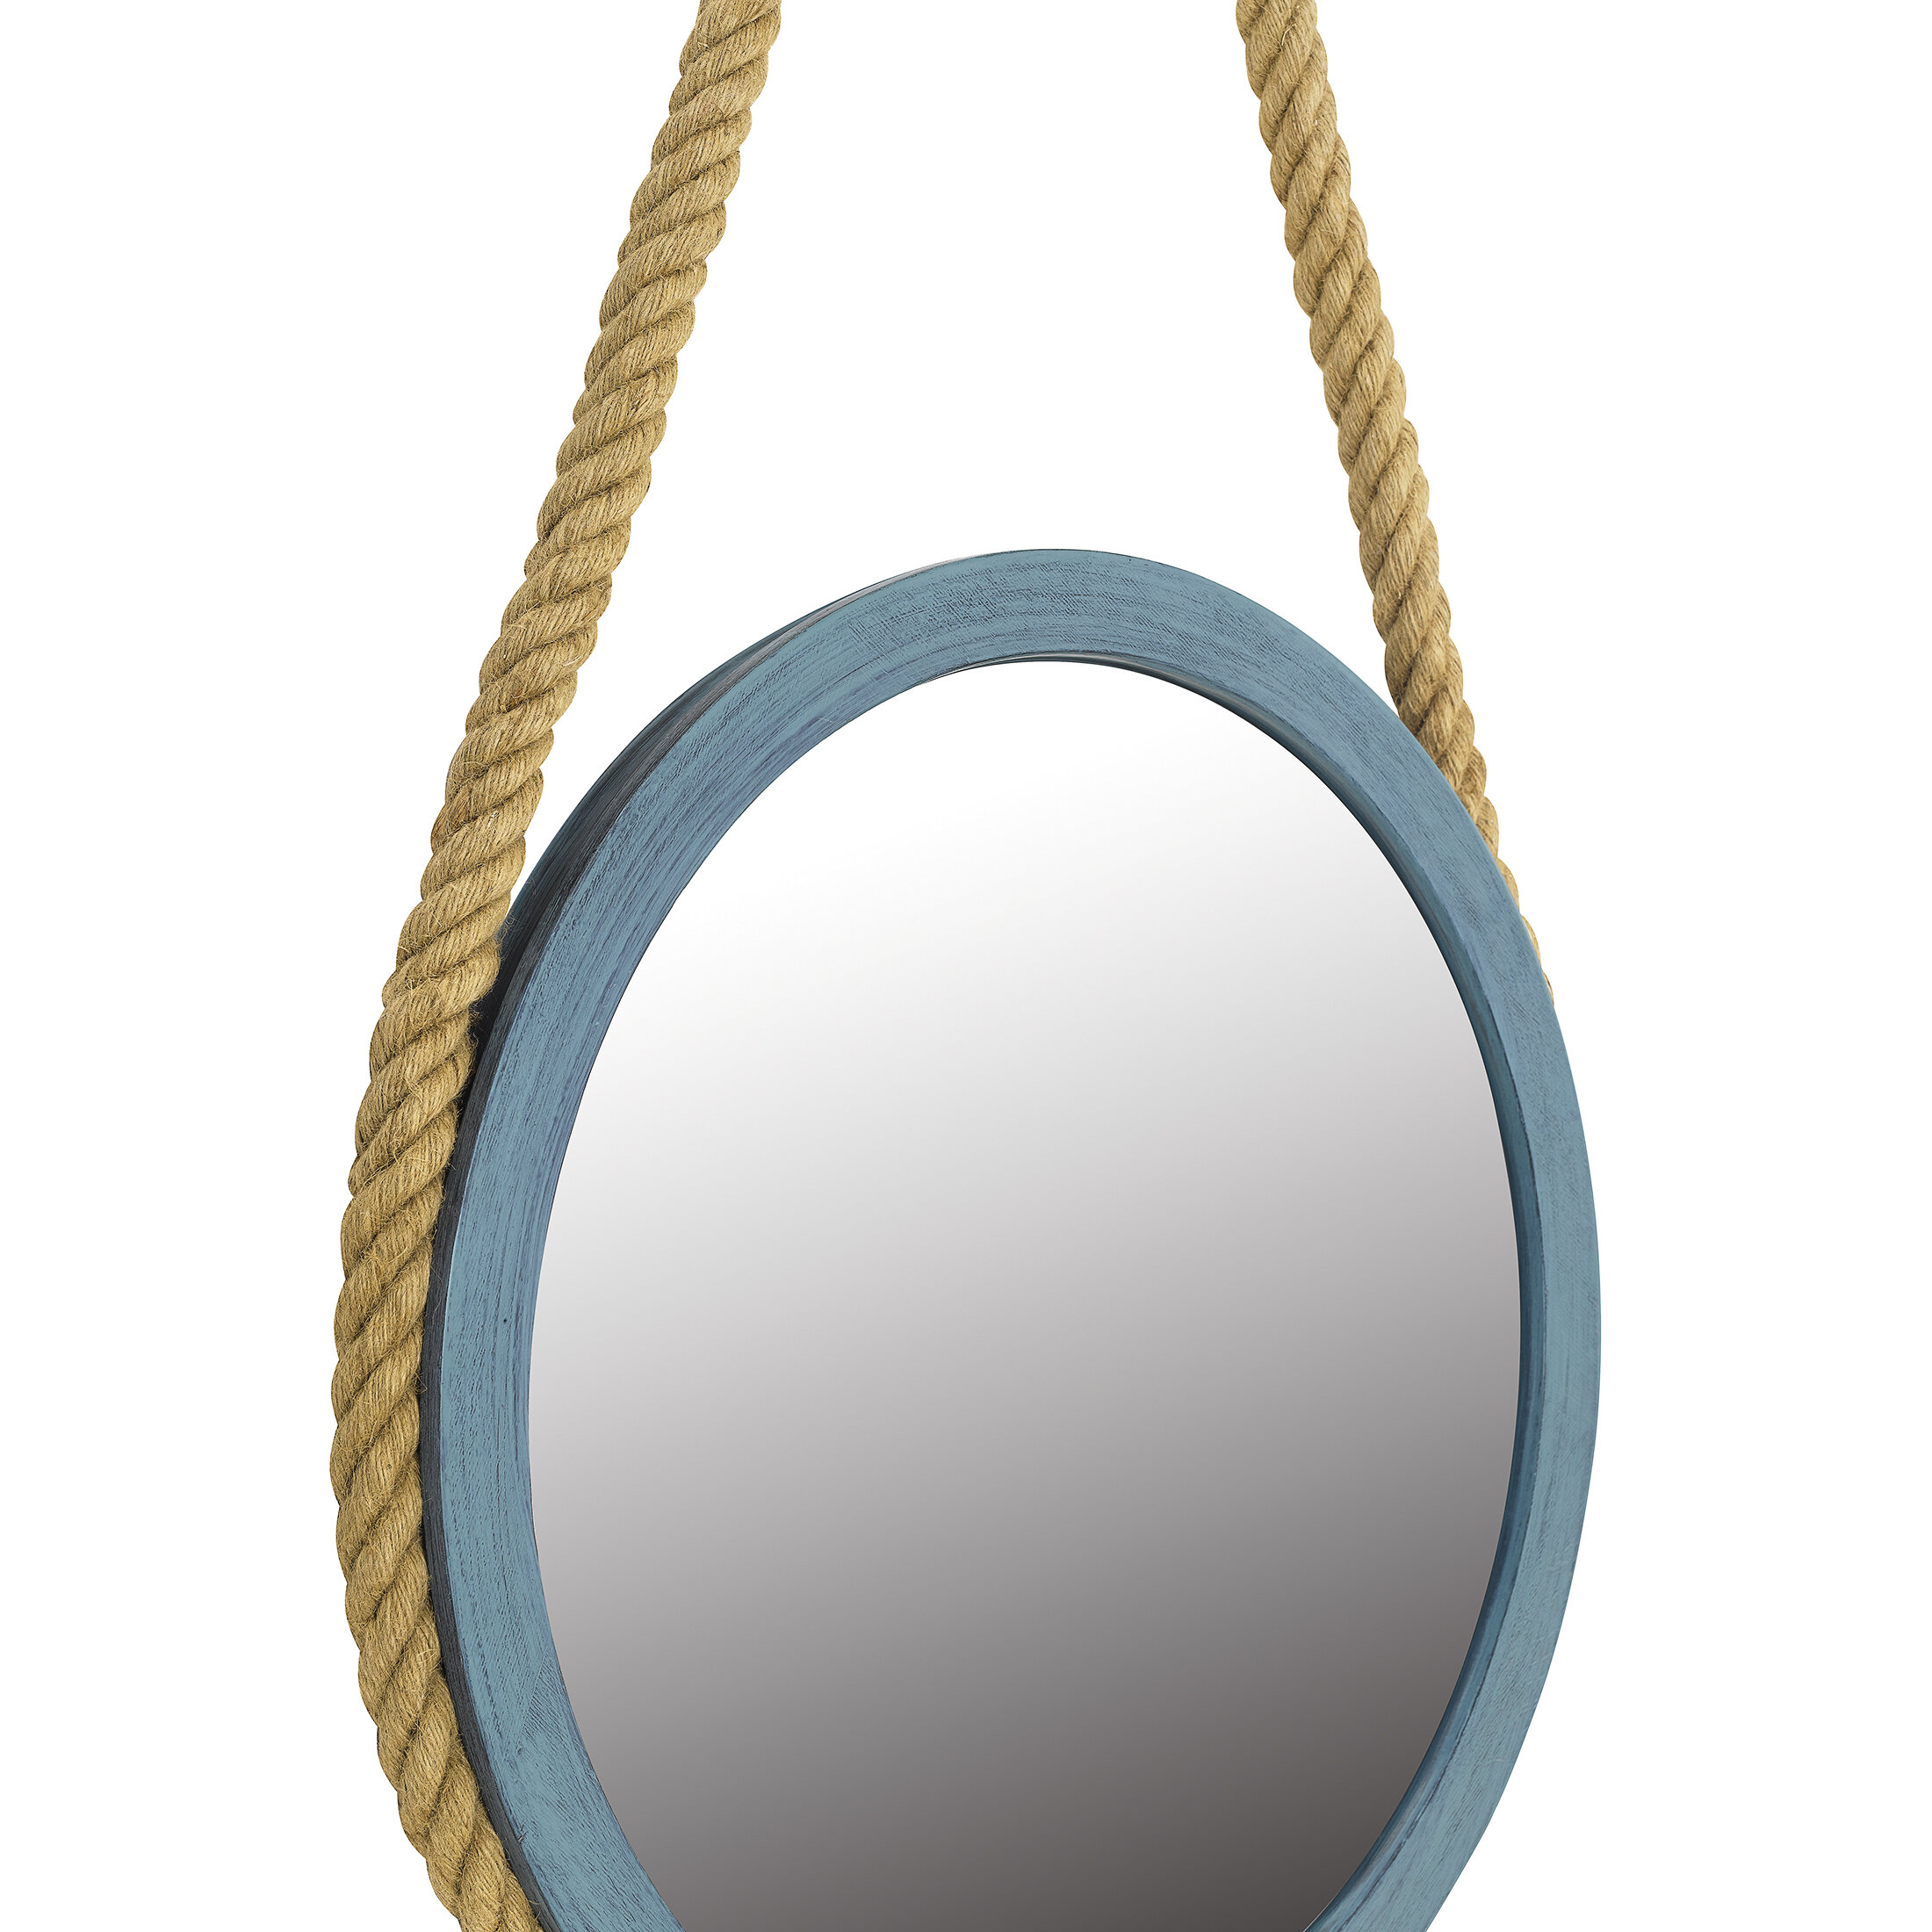 Longshore Tides Theon Modern And Contemporary Wall Mounted Mirror Wayfair